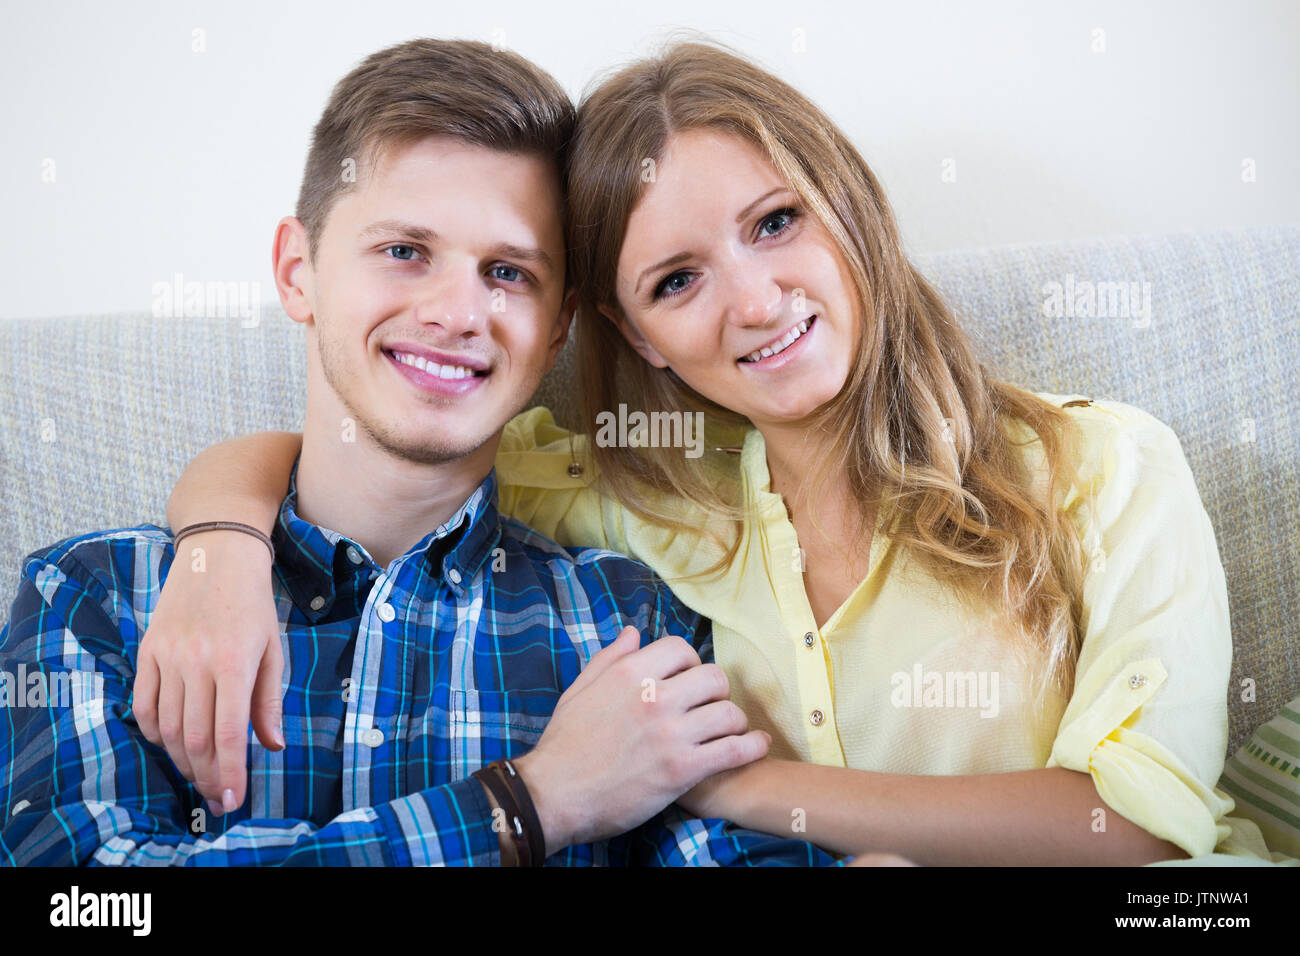 1290c98b8655 young european guy and pretty girl cuddling on sofa indoors Stock ...